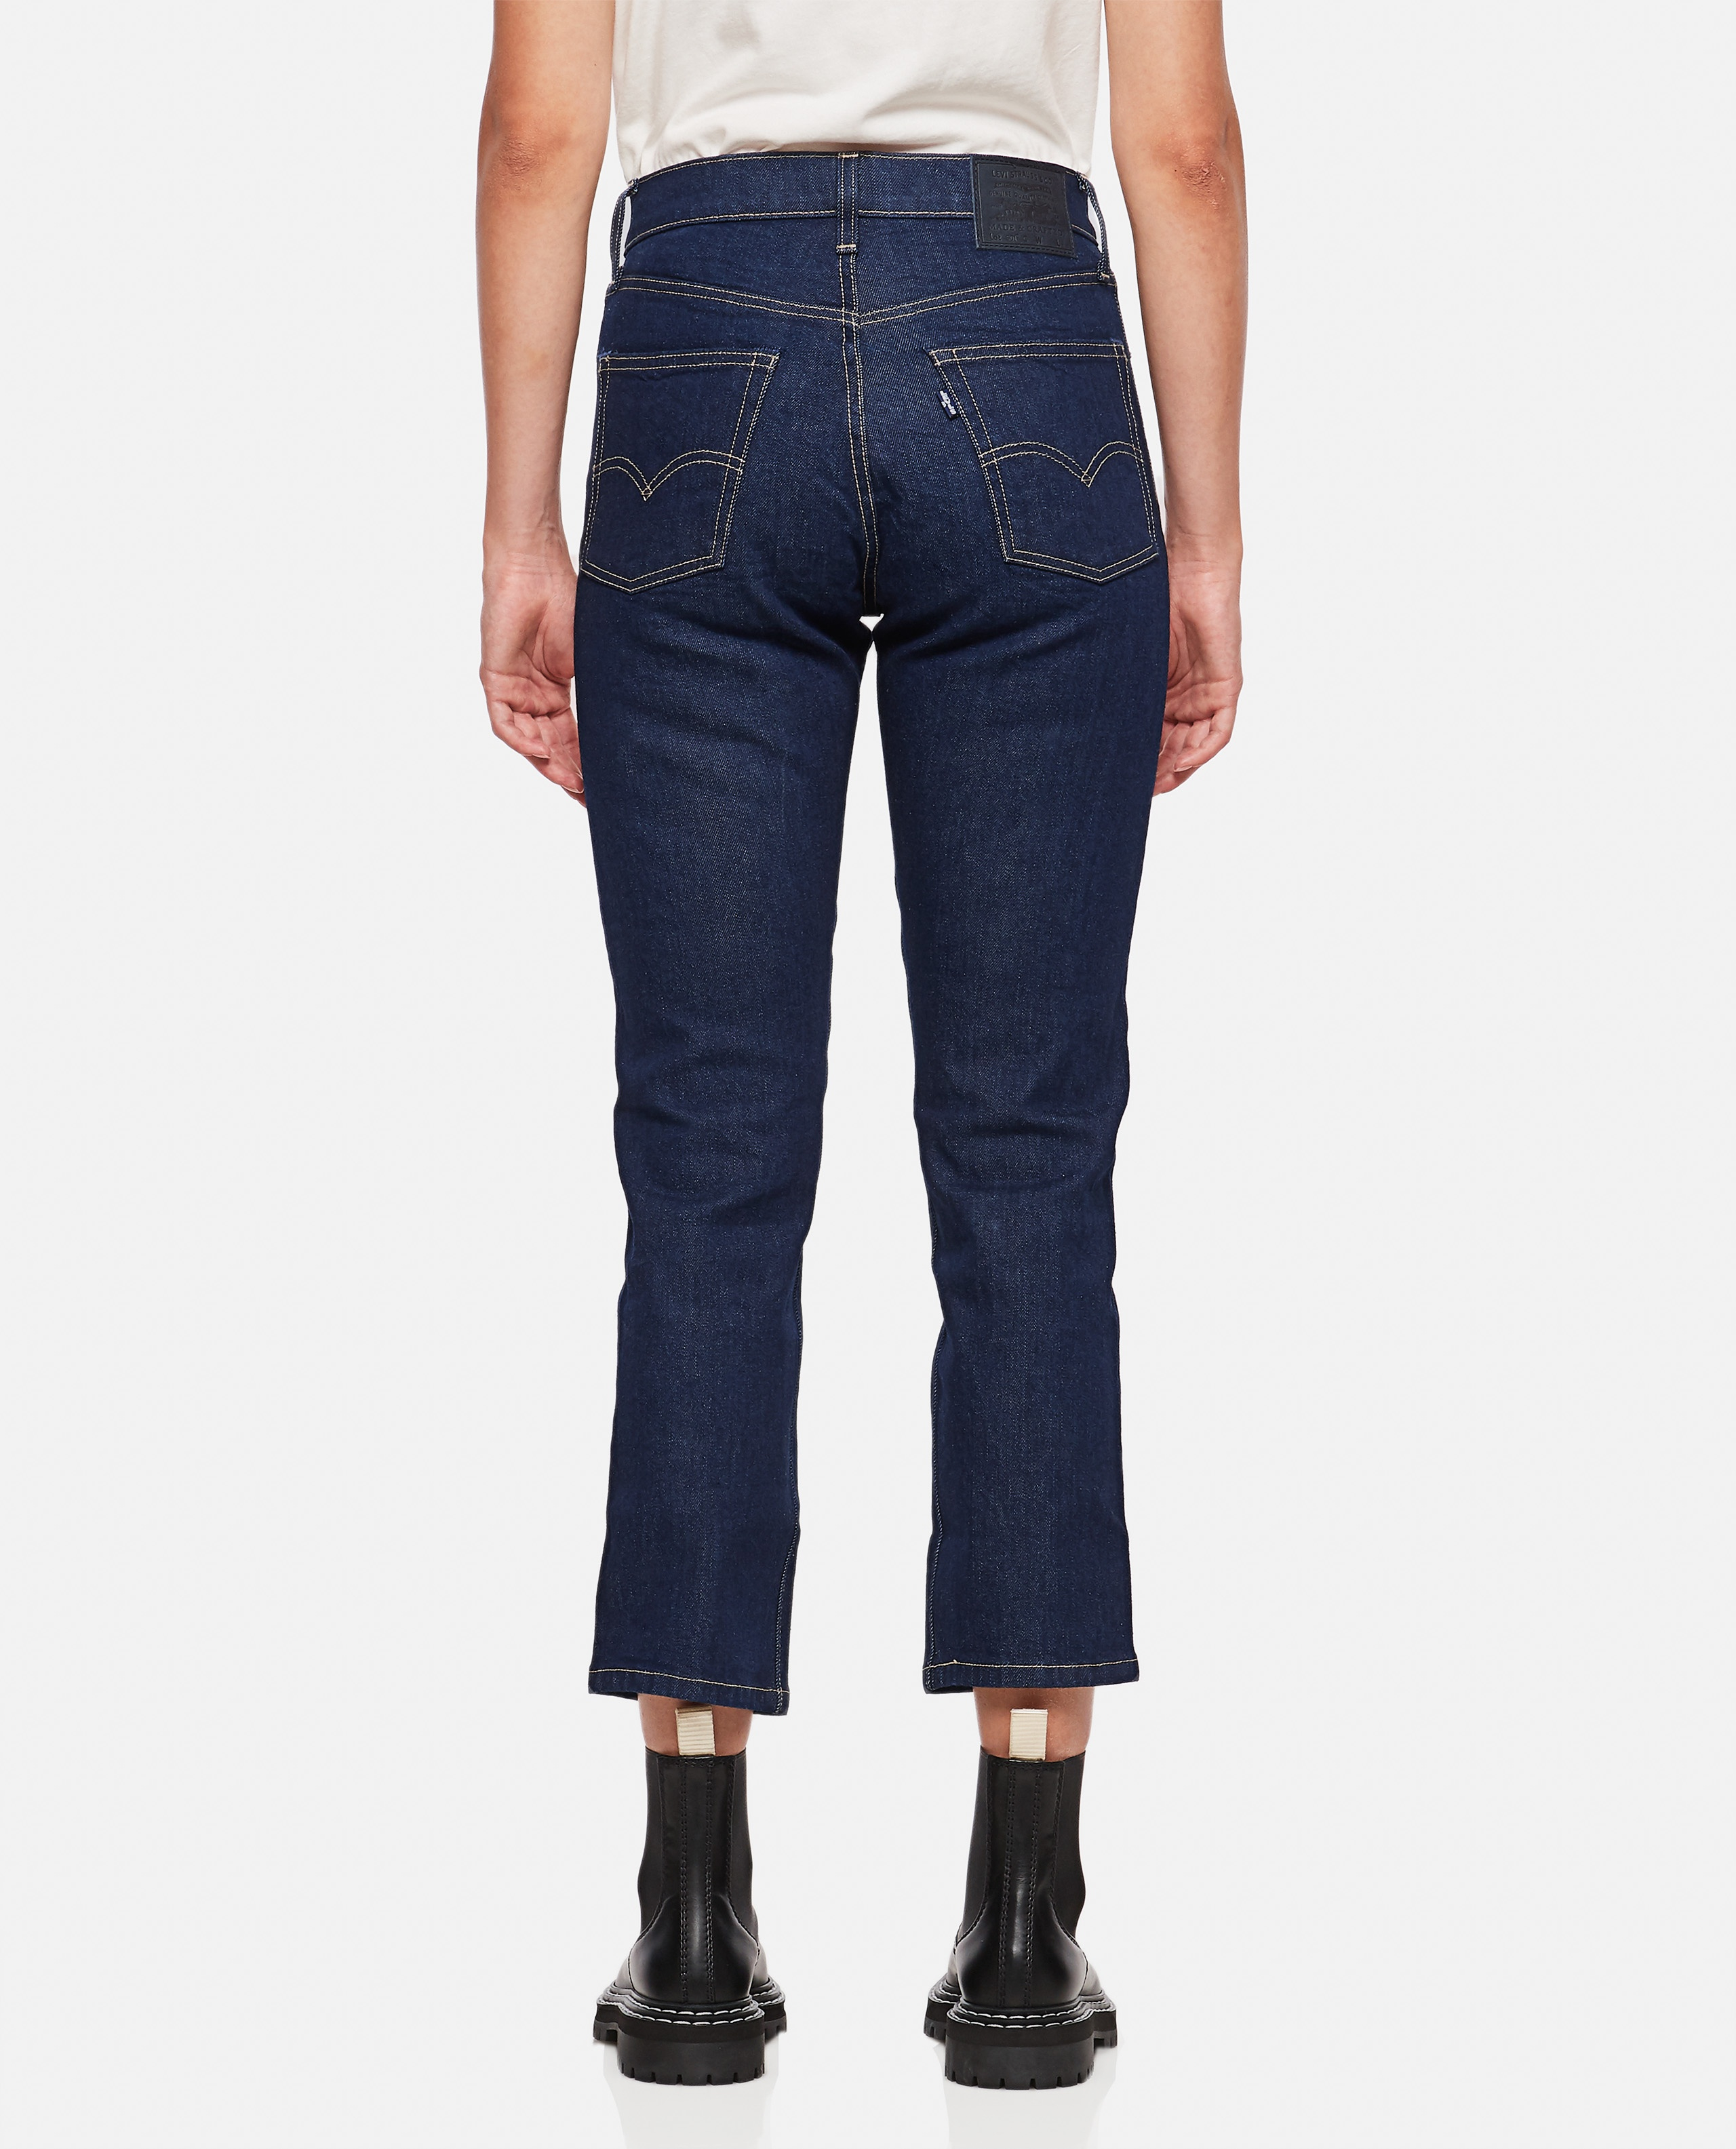 LEVI'S MADE & CRAFTED 501 CROP JEANS Women Levi Strauss & Co. 000352880051346 3